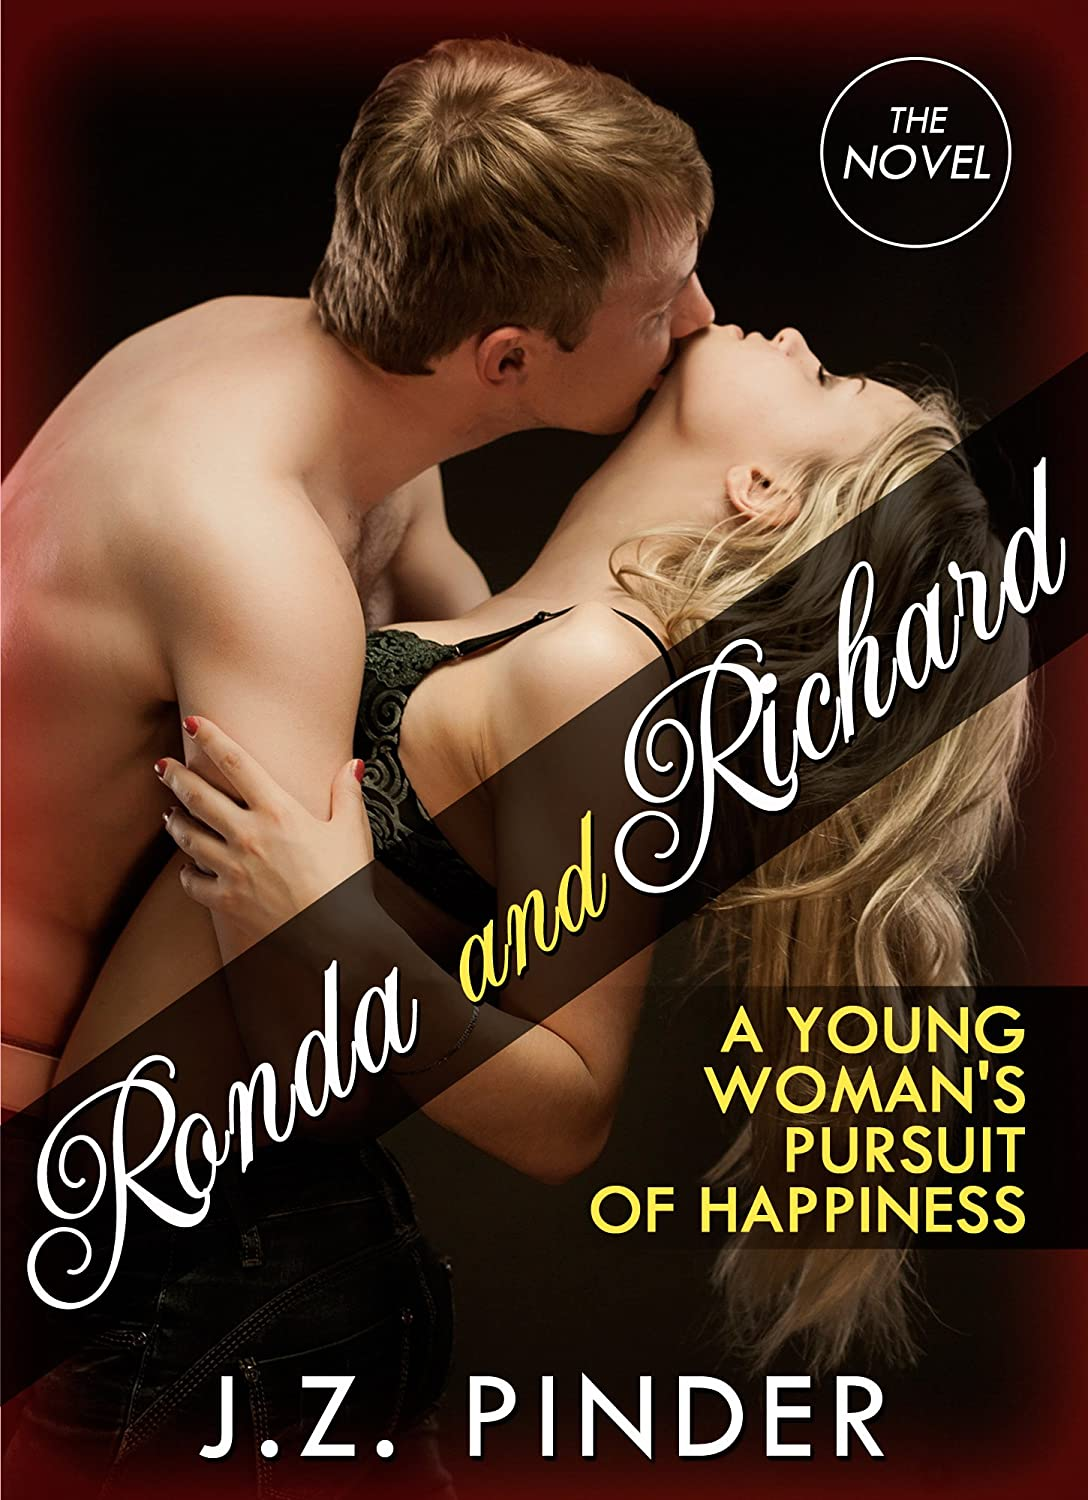 Ronda and Richard: The Novel – A Young Woman's Pursuit of Happiness